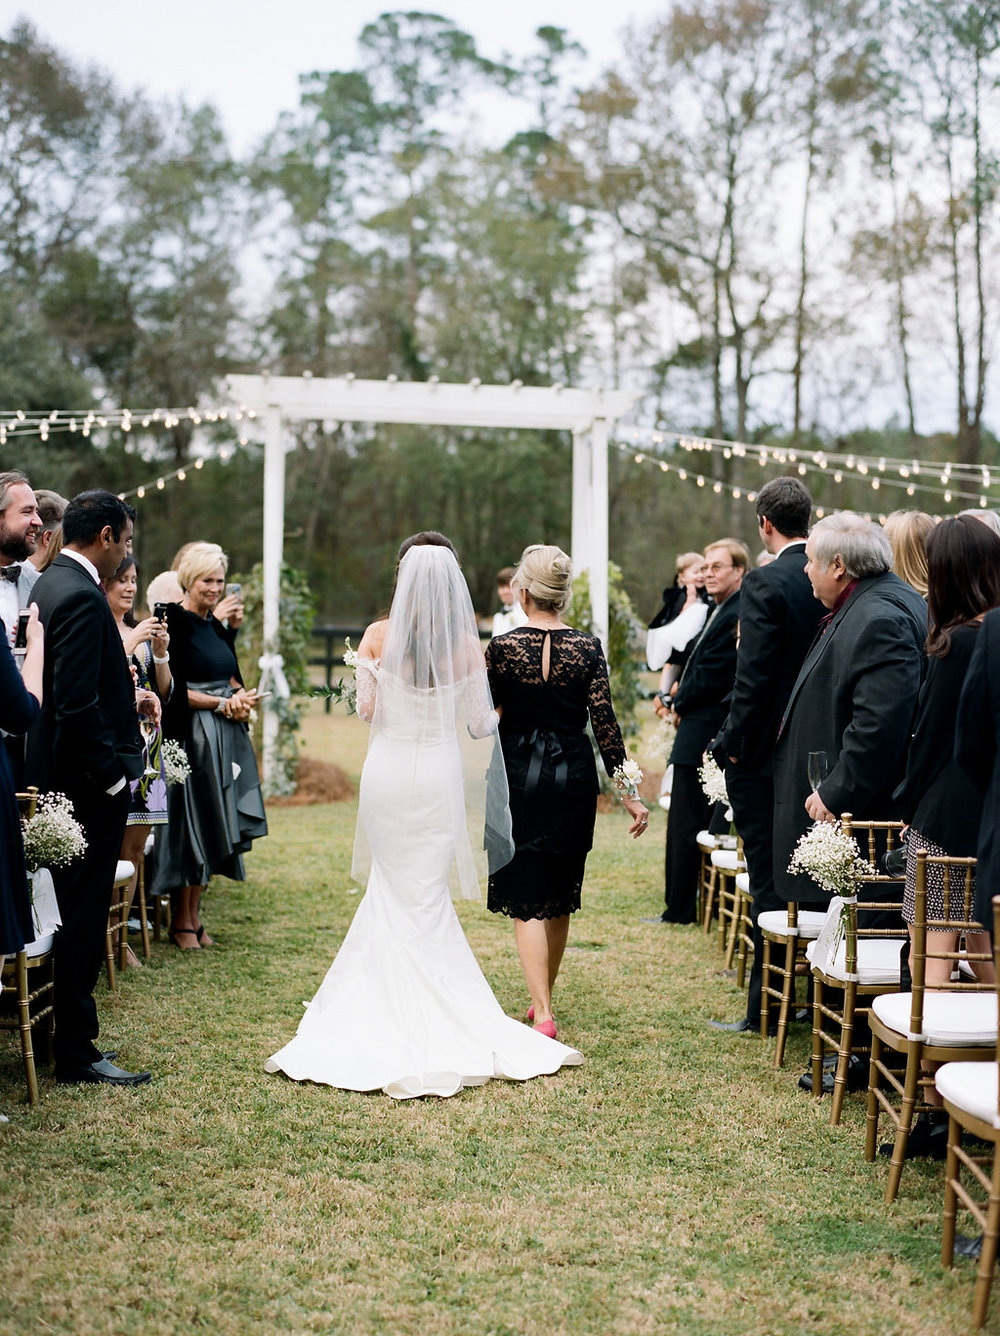 mps-photographie-nicole-miller-dakota-savannah-bridal-boutique-ivory-and-beau-bridal-boutique-savannah-weddings-savannah-bride-southern-bride-savannah-weddings-adele-amelia-veil-24.jpg